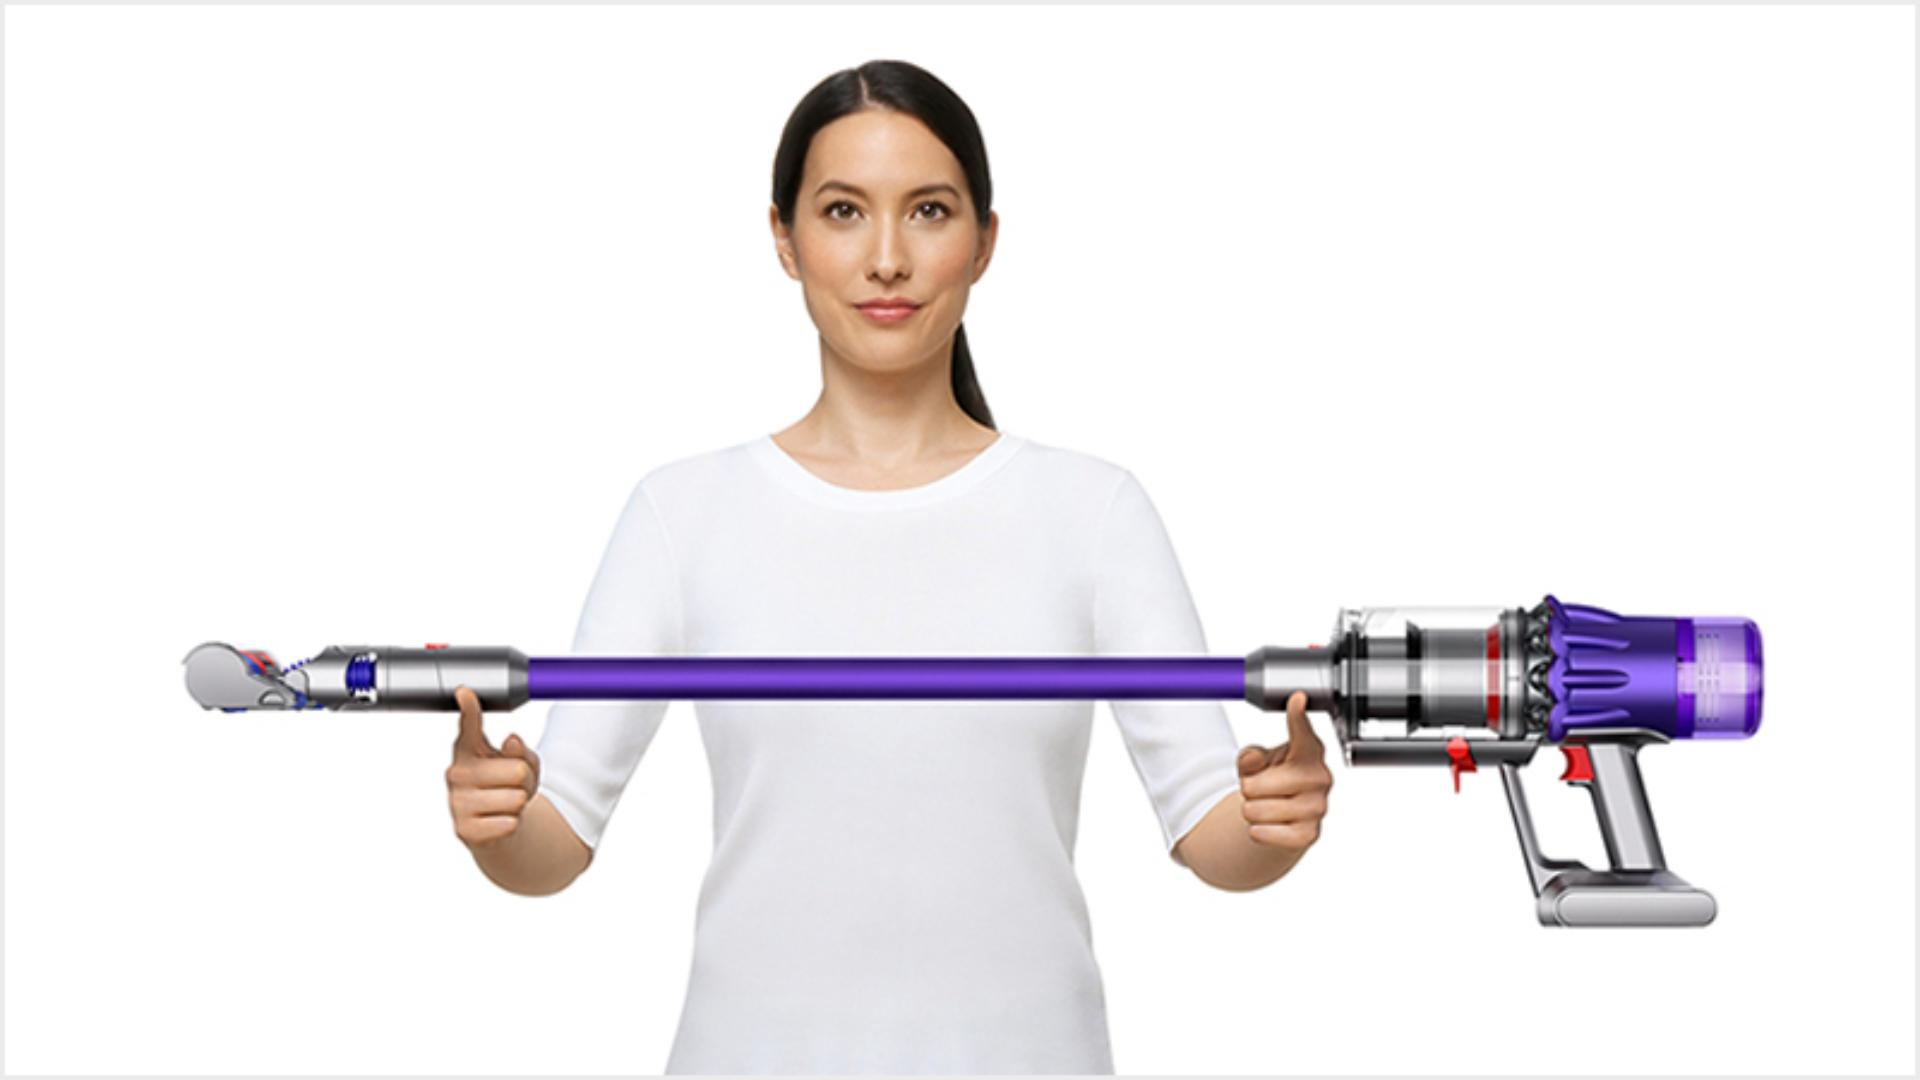 Woman lifting the Dyson Digital Slim vacuum